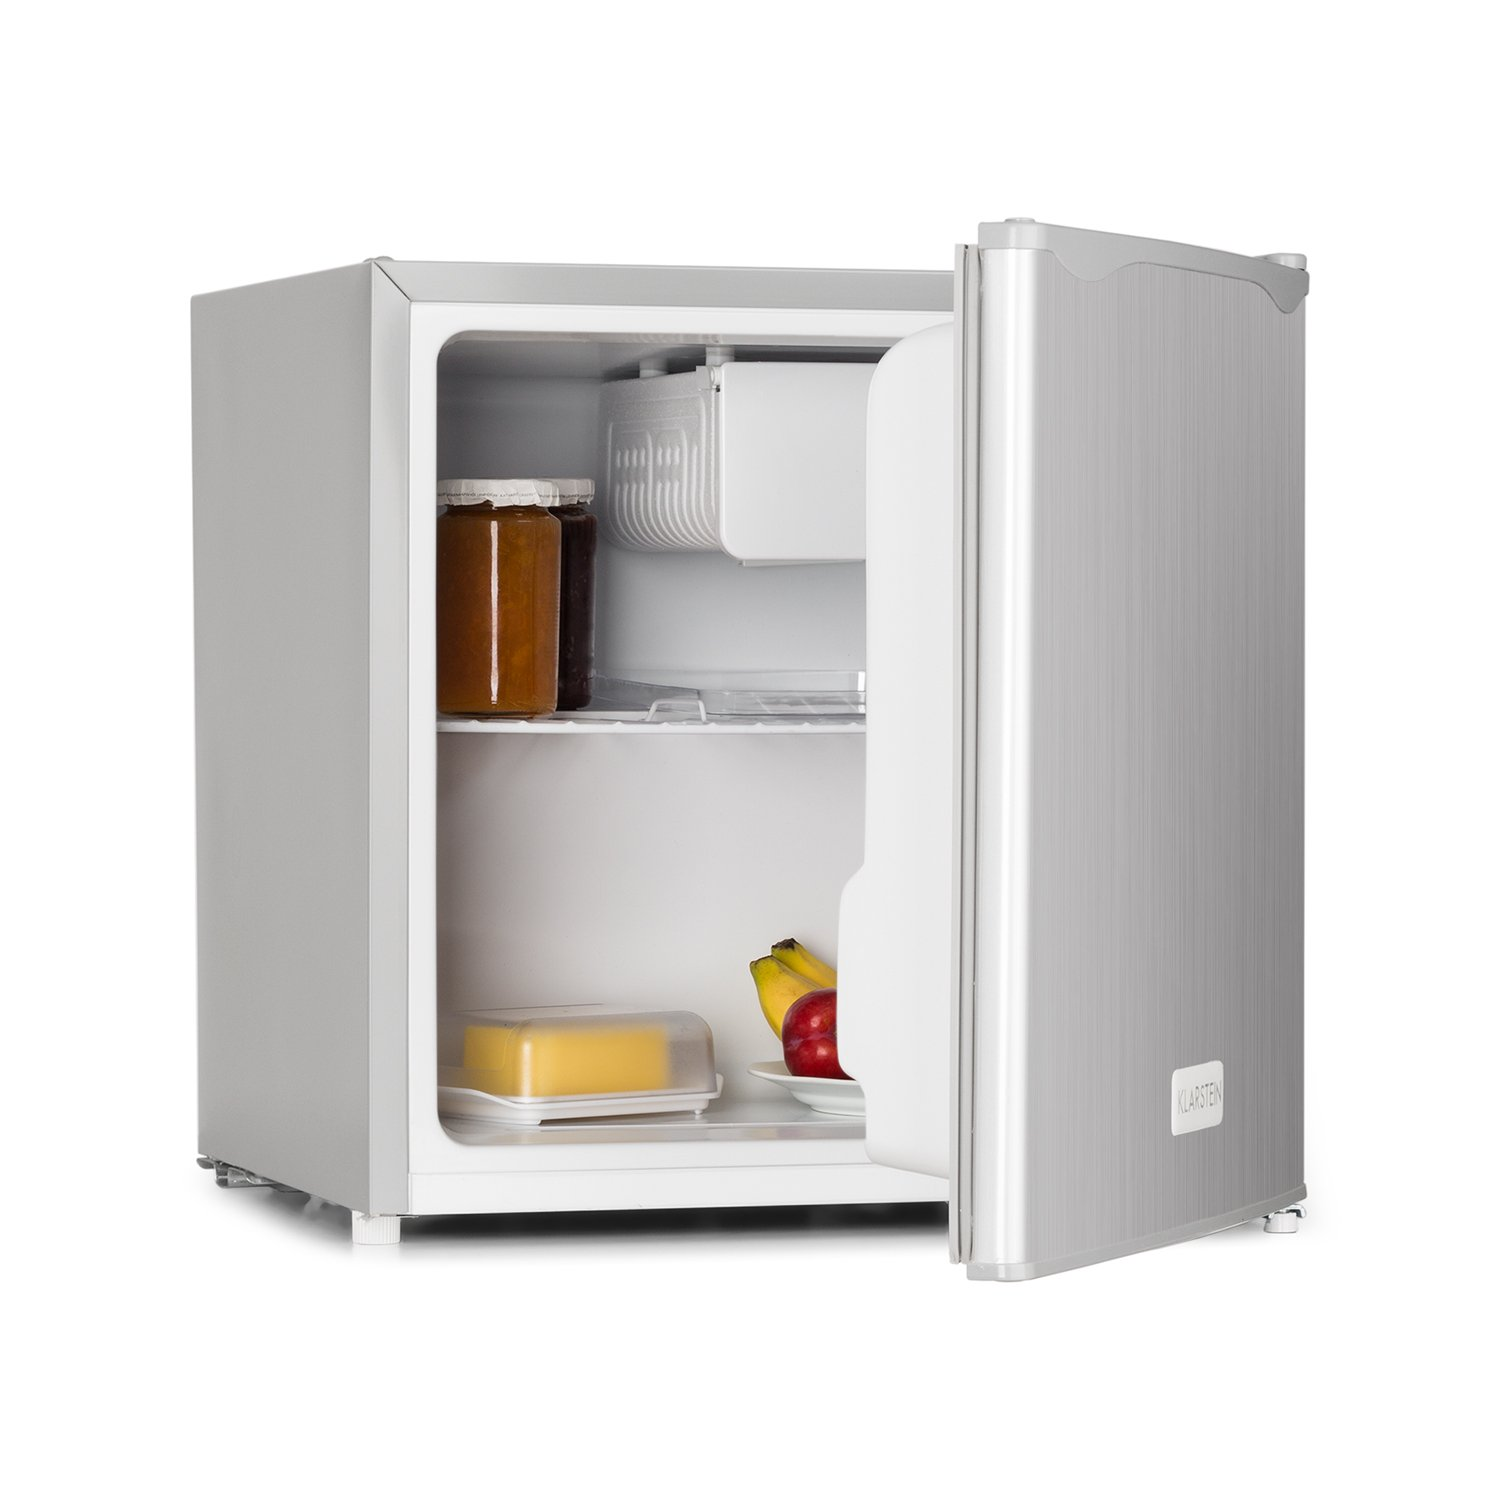 Klarstein 40L1-SG Mini Fridge • Mini Bar • 40 Litre Capacity • Mini Box Freezer • 2 Storage Compartments in Door • Low Noise Level • Removable Shelf Rack • Reversible Door • Stainless Steel • Energy Class A+ • Controlled Cooling Temperature • Easy to Clean